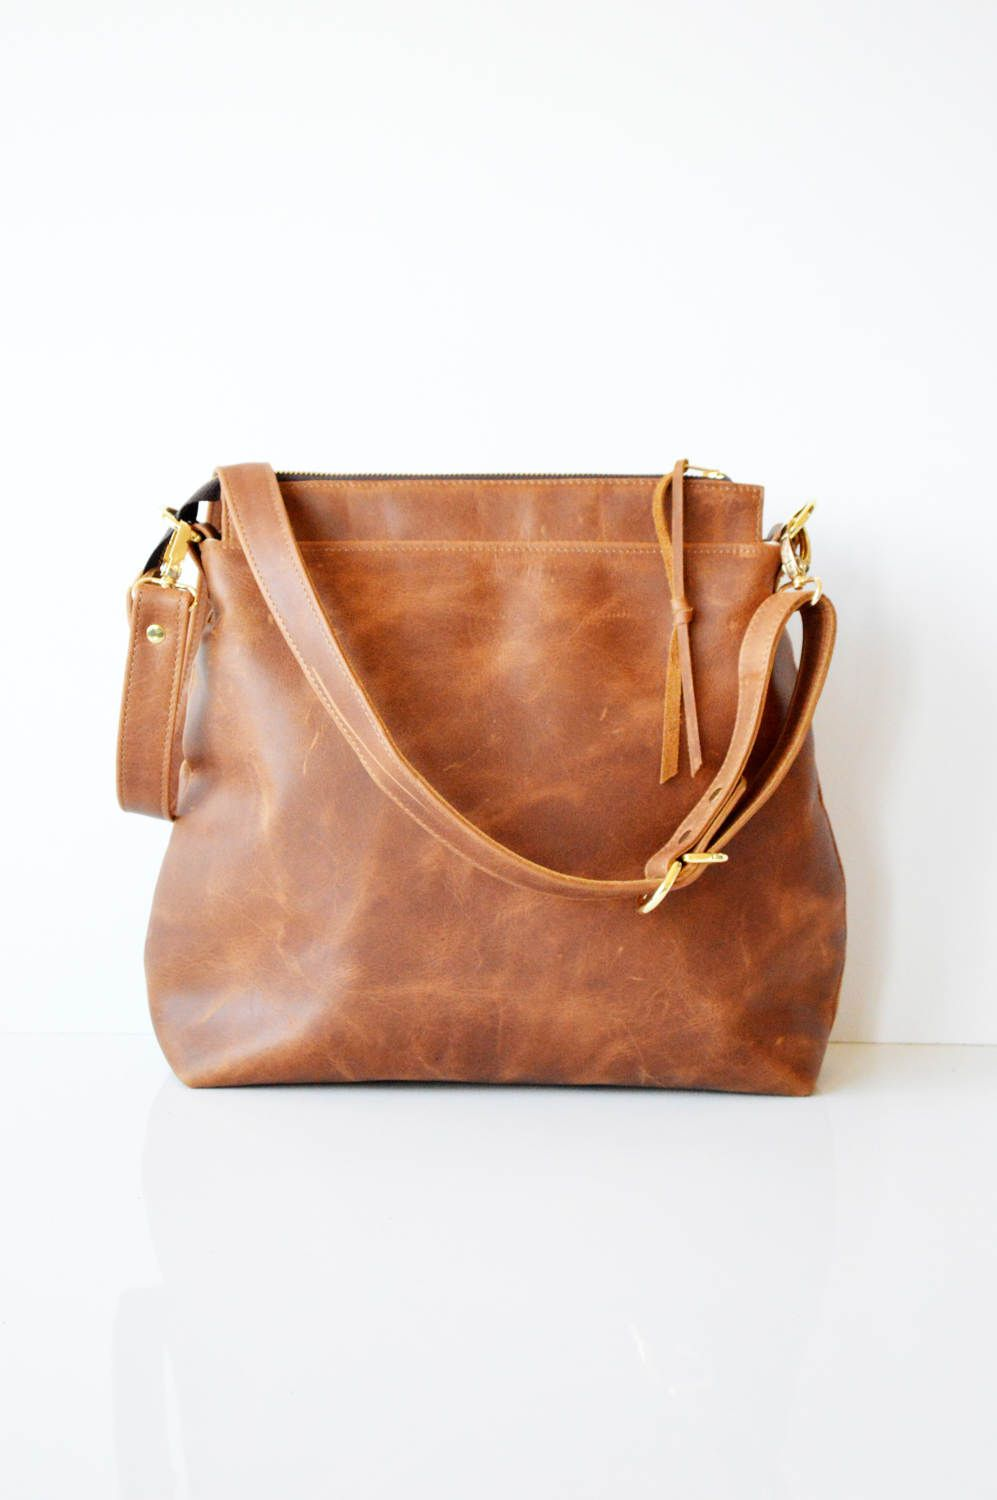 Leather hobo bag / Leather crossbody bag / Leather bag / Leather ...